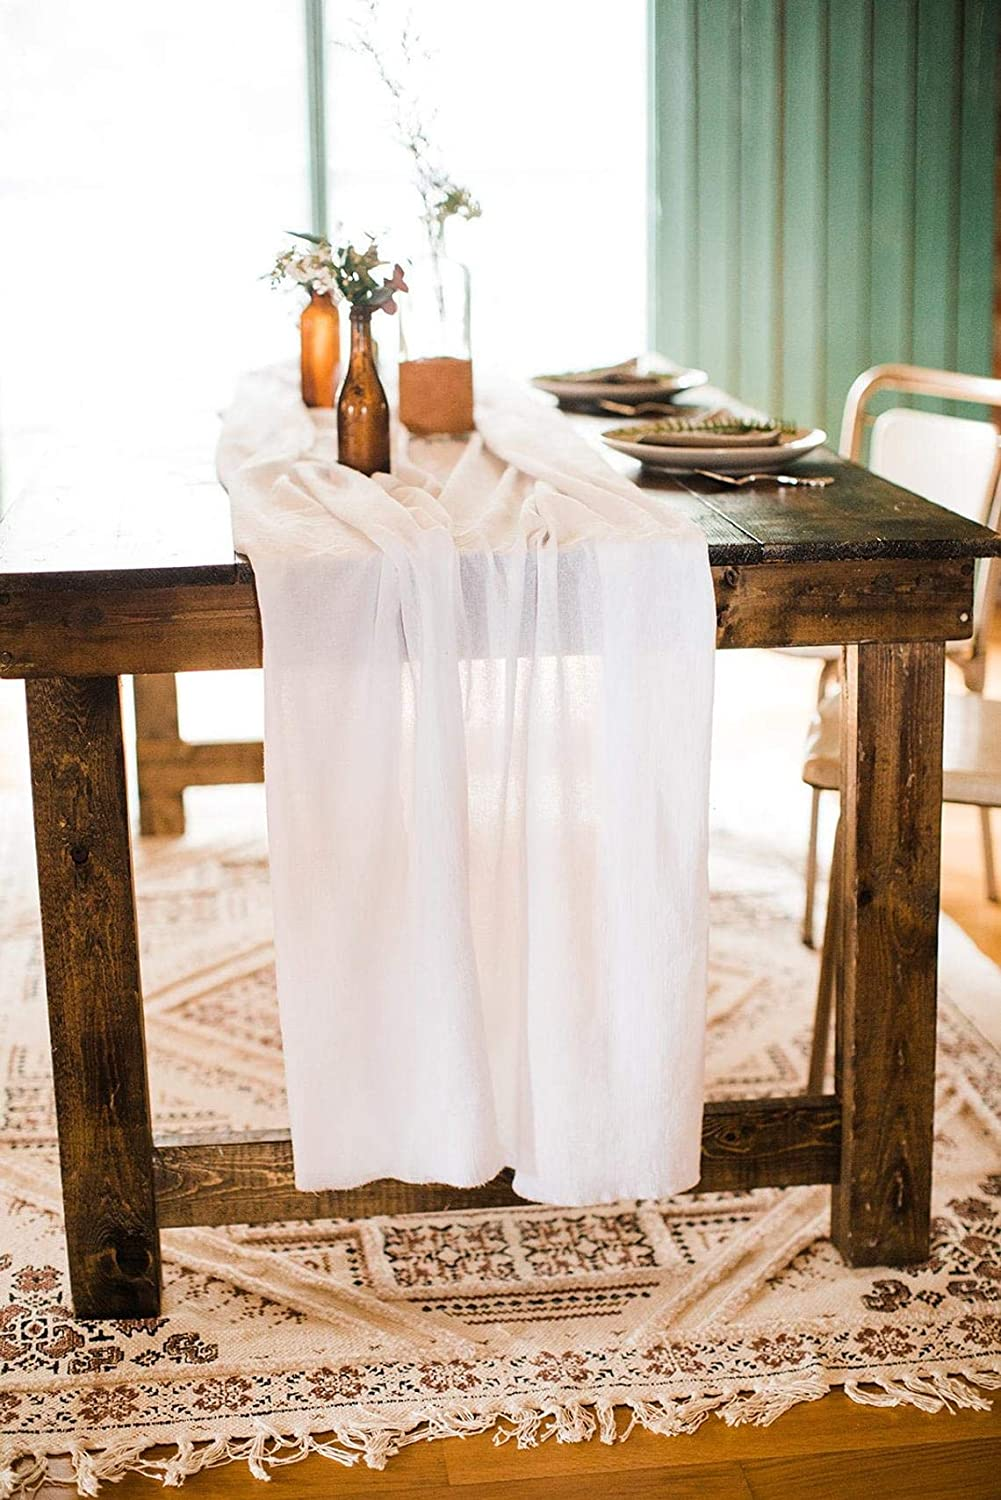 Wedding Runner - Cheesecloth Popular popular Gauze New product type White Table Ru